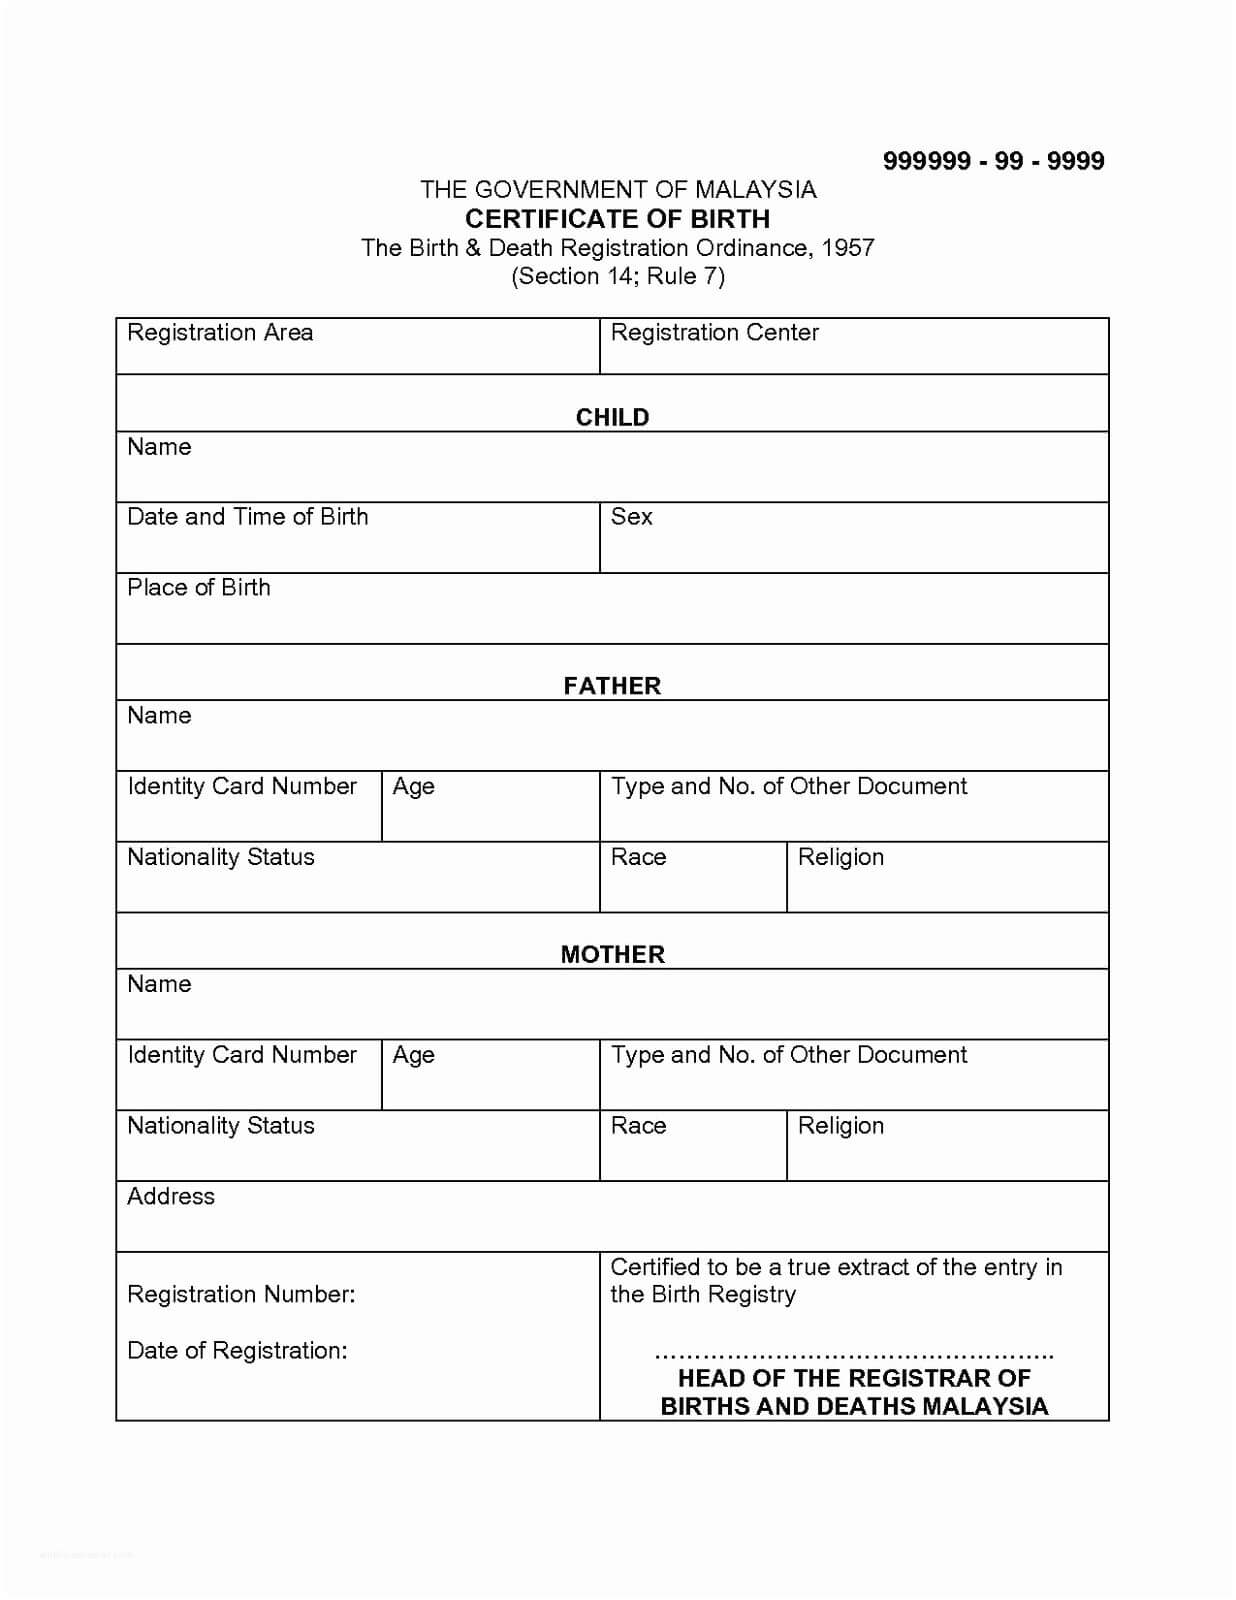 Death Certificate Sample Pakistan Archives Best Marriage With Birth Certificate Translation Template Uscis